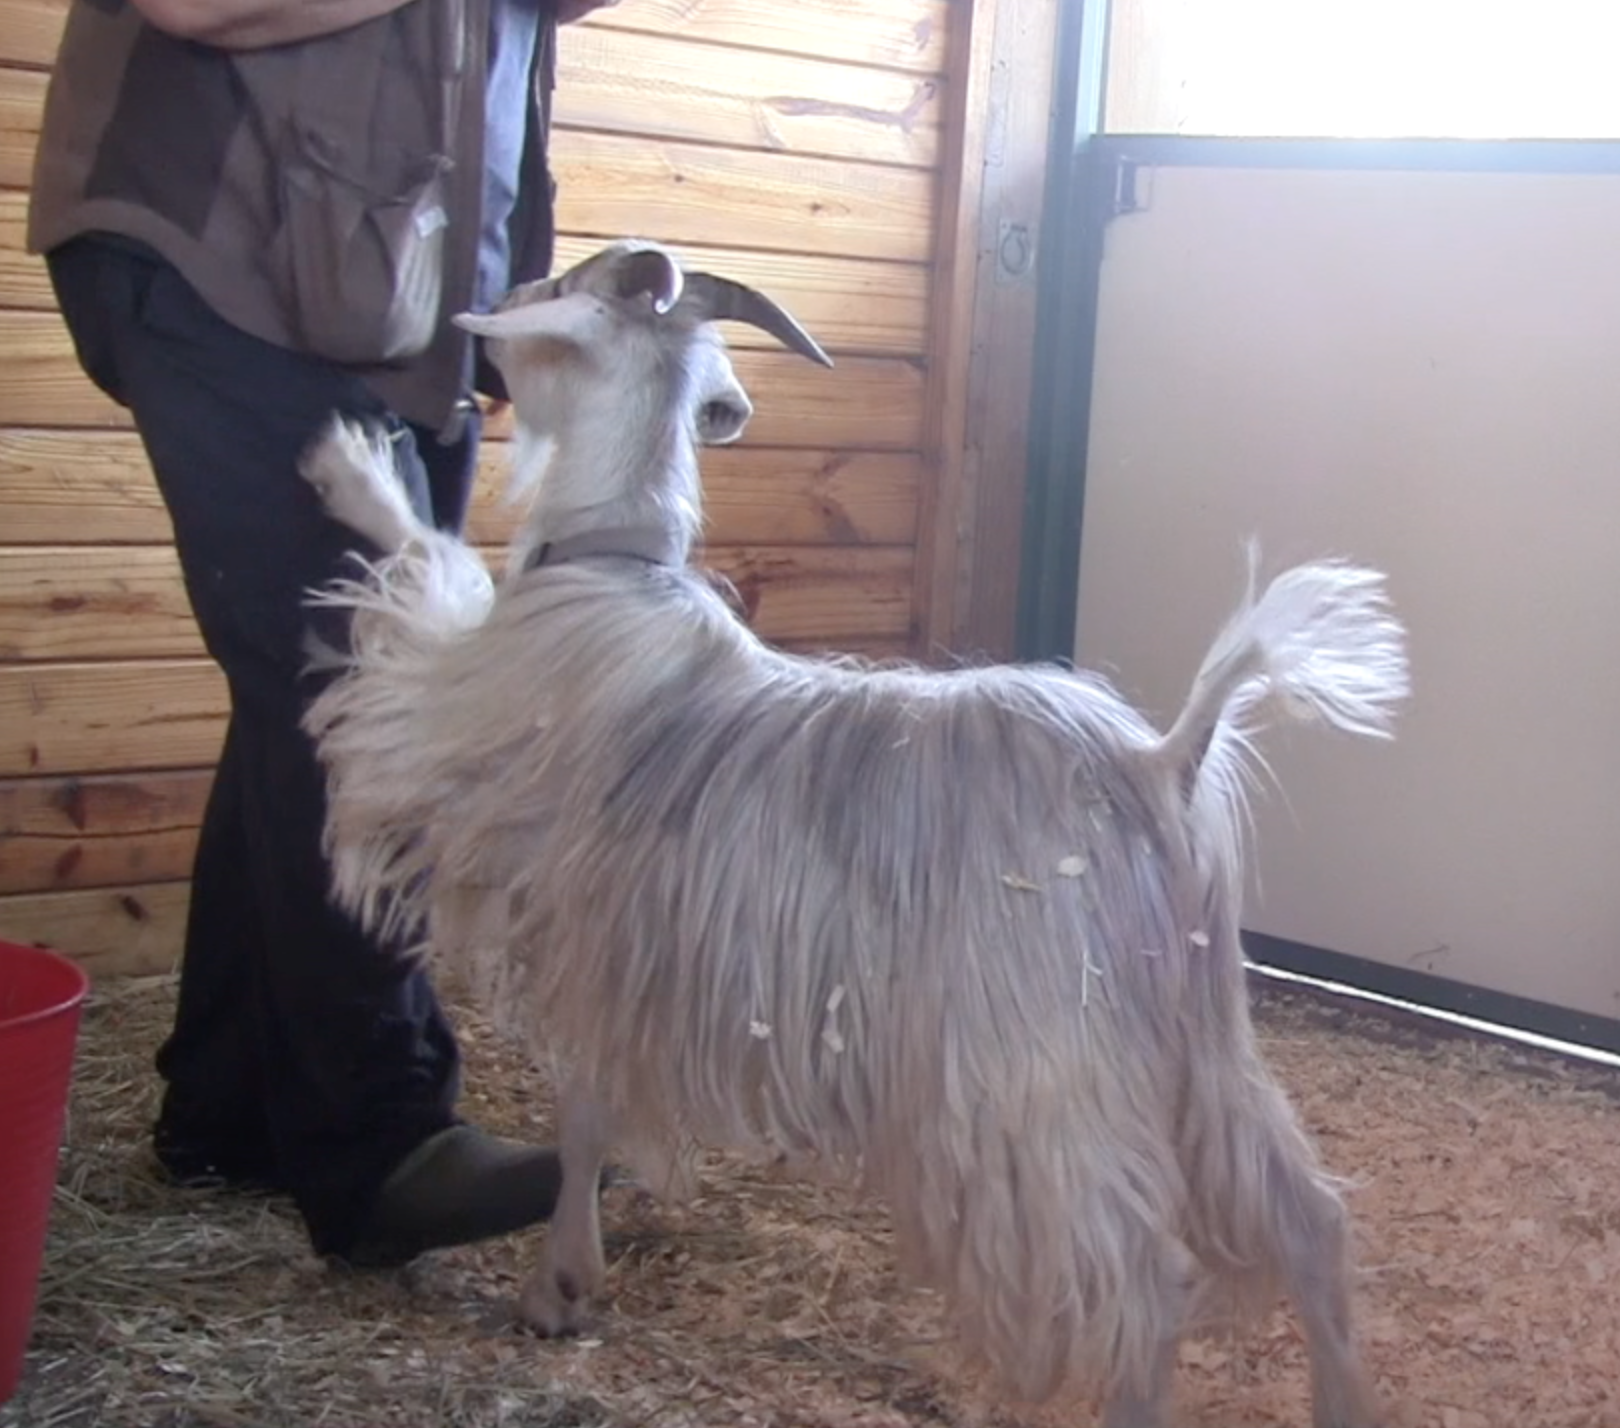 Goats E What not To Do pawing